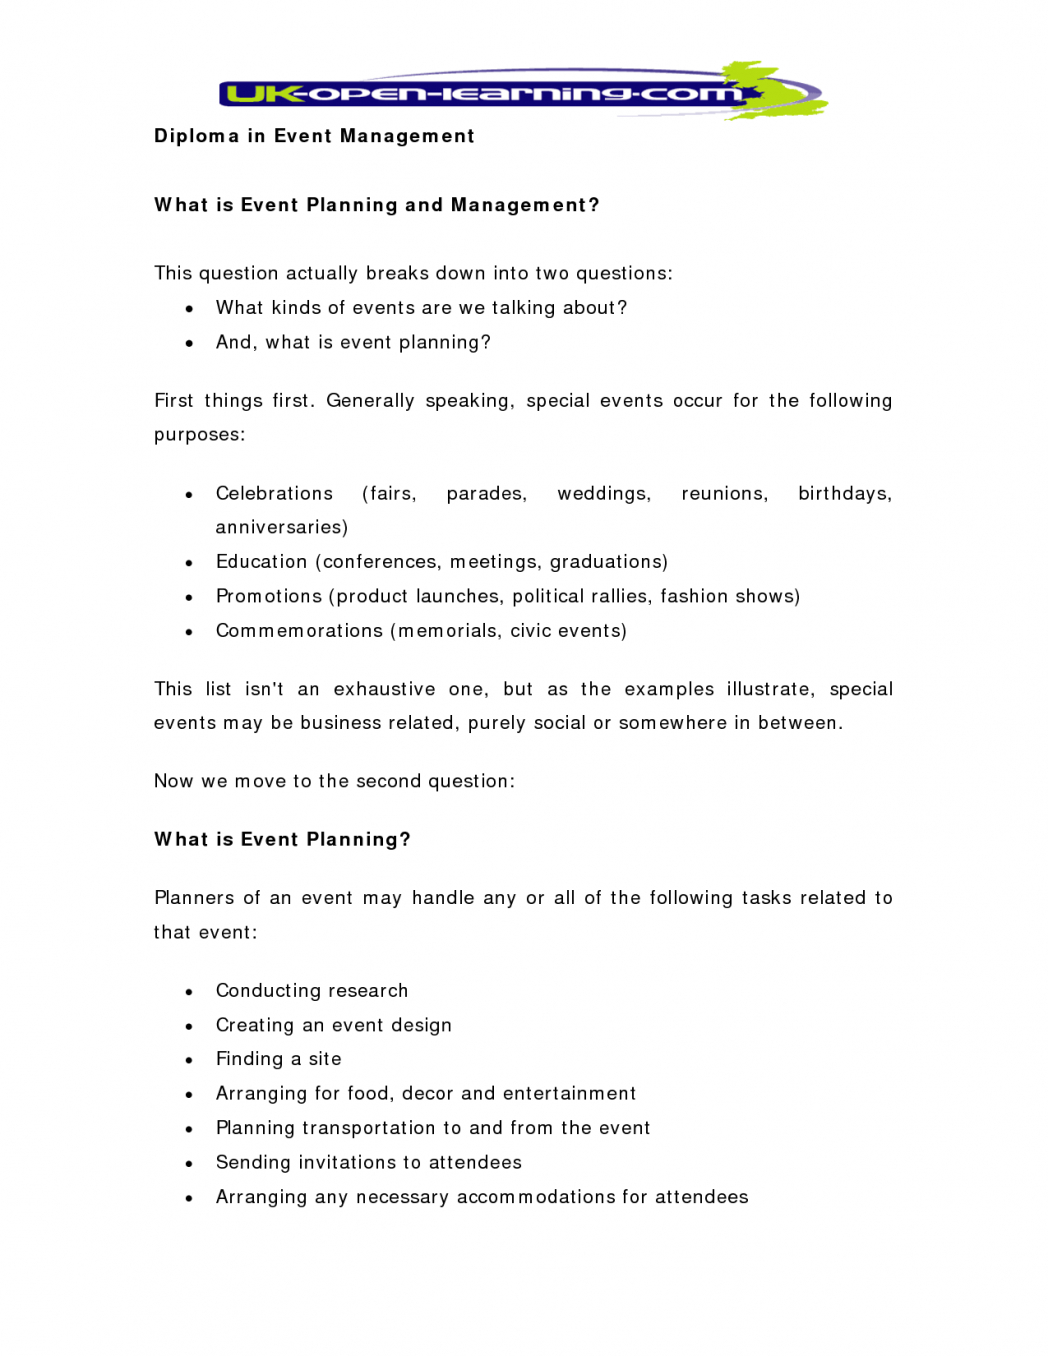 Event Management Plan Pdf Plans Marketing Siness In India Inside Events Company Business Plan Template